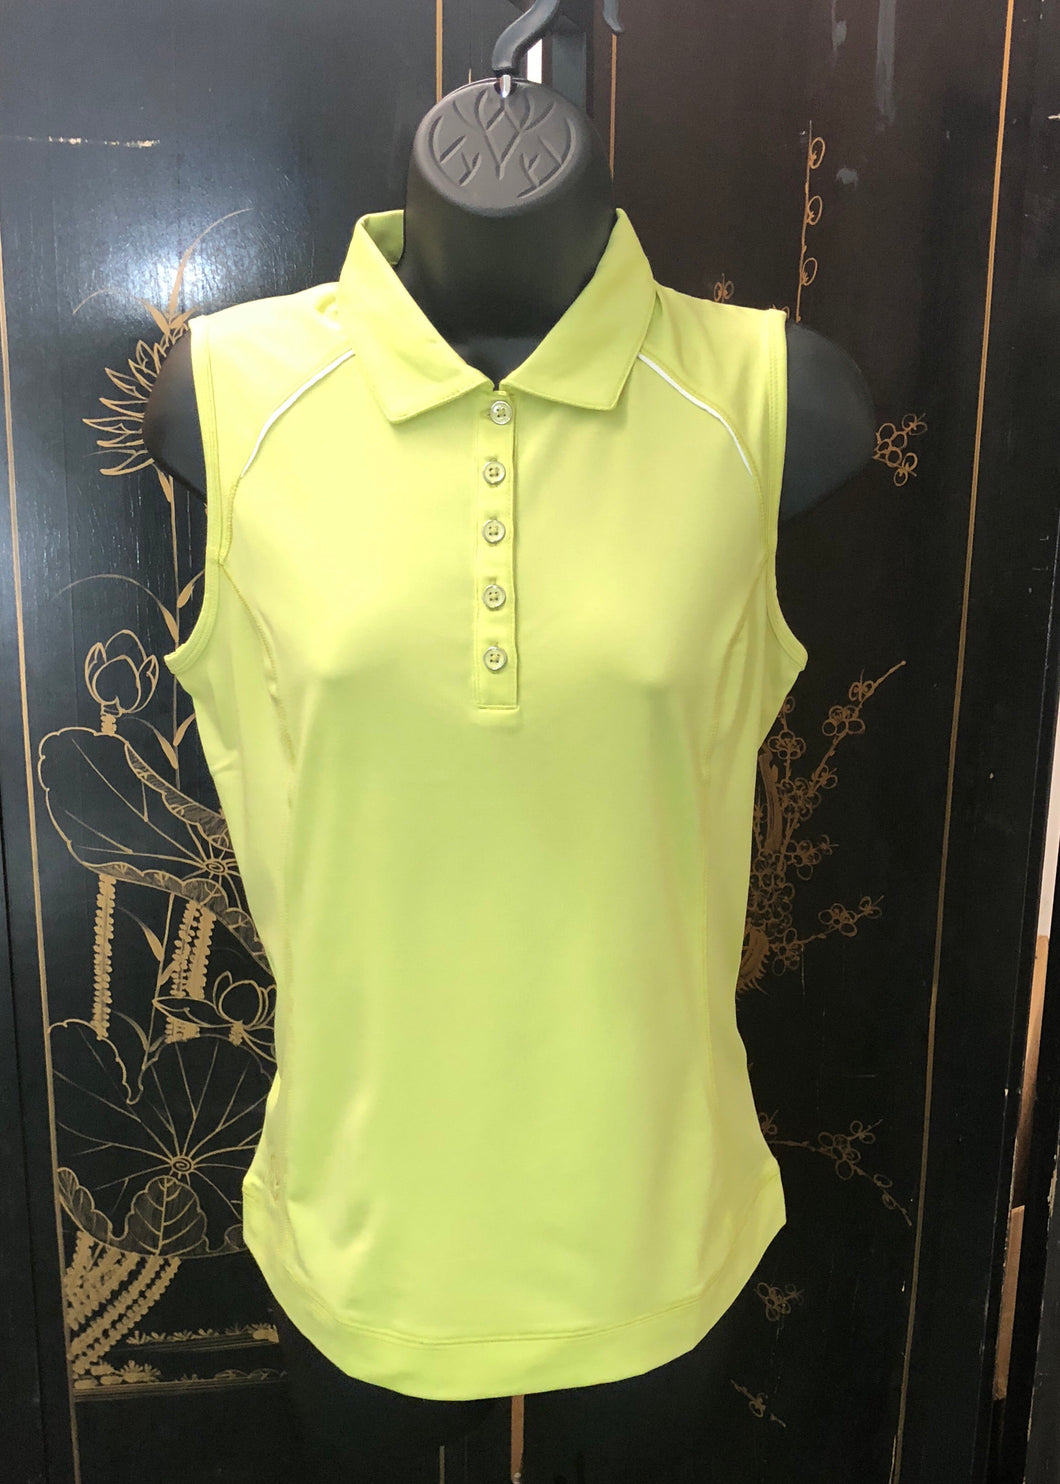 Kate Lord Hatley Sleeveless Princess Seam Golf Polo with Piping Keylime BK06